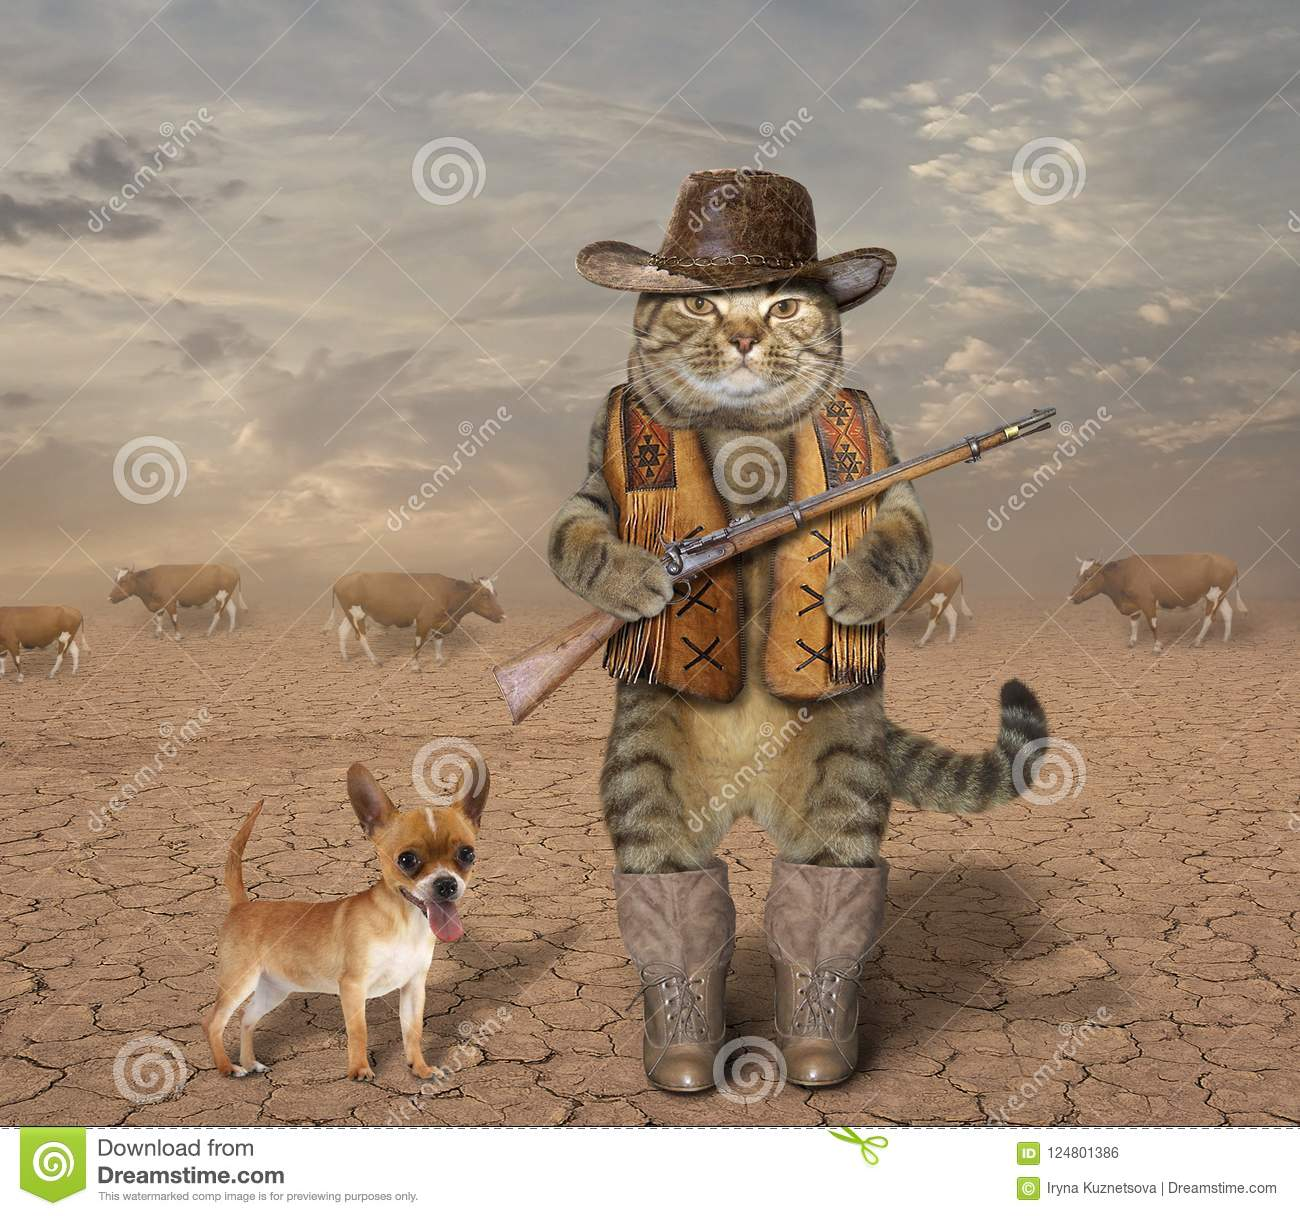 Cat cowboy with dog 1 stock photo. Image of outfit, desert ...